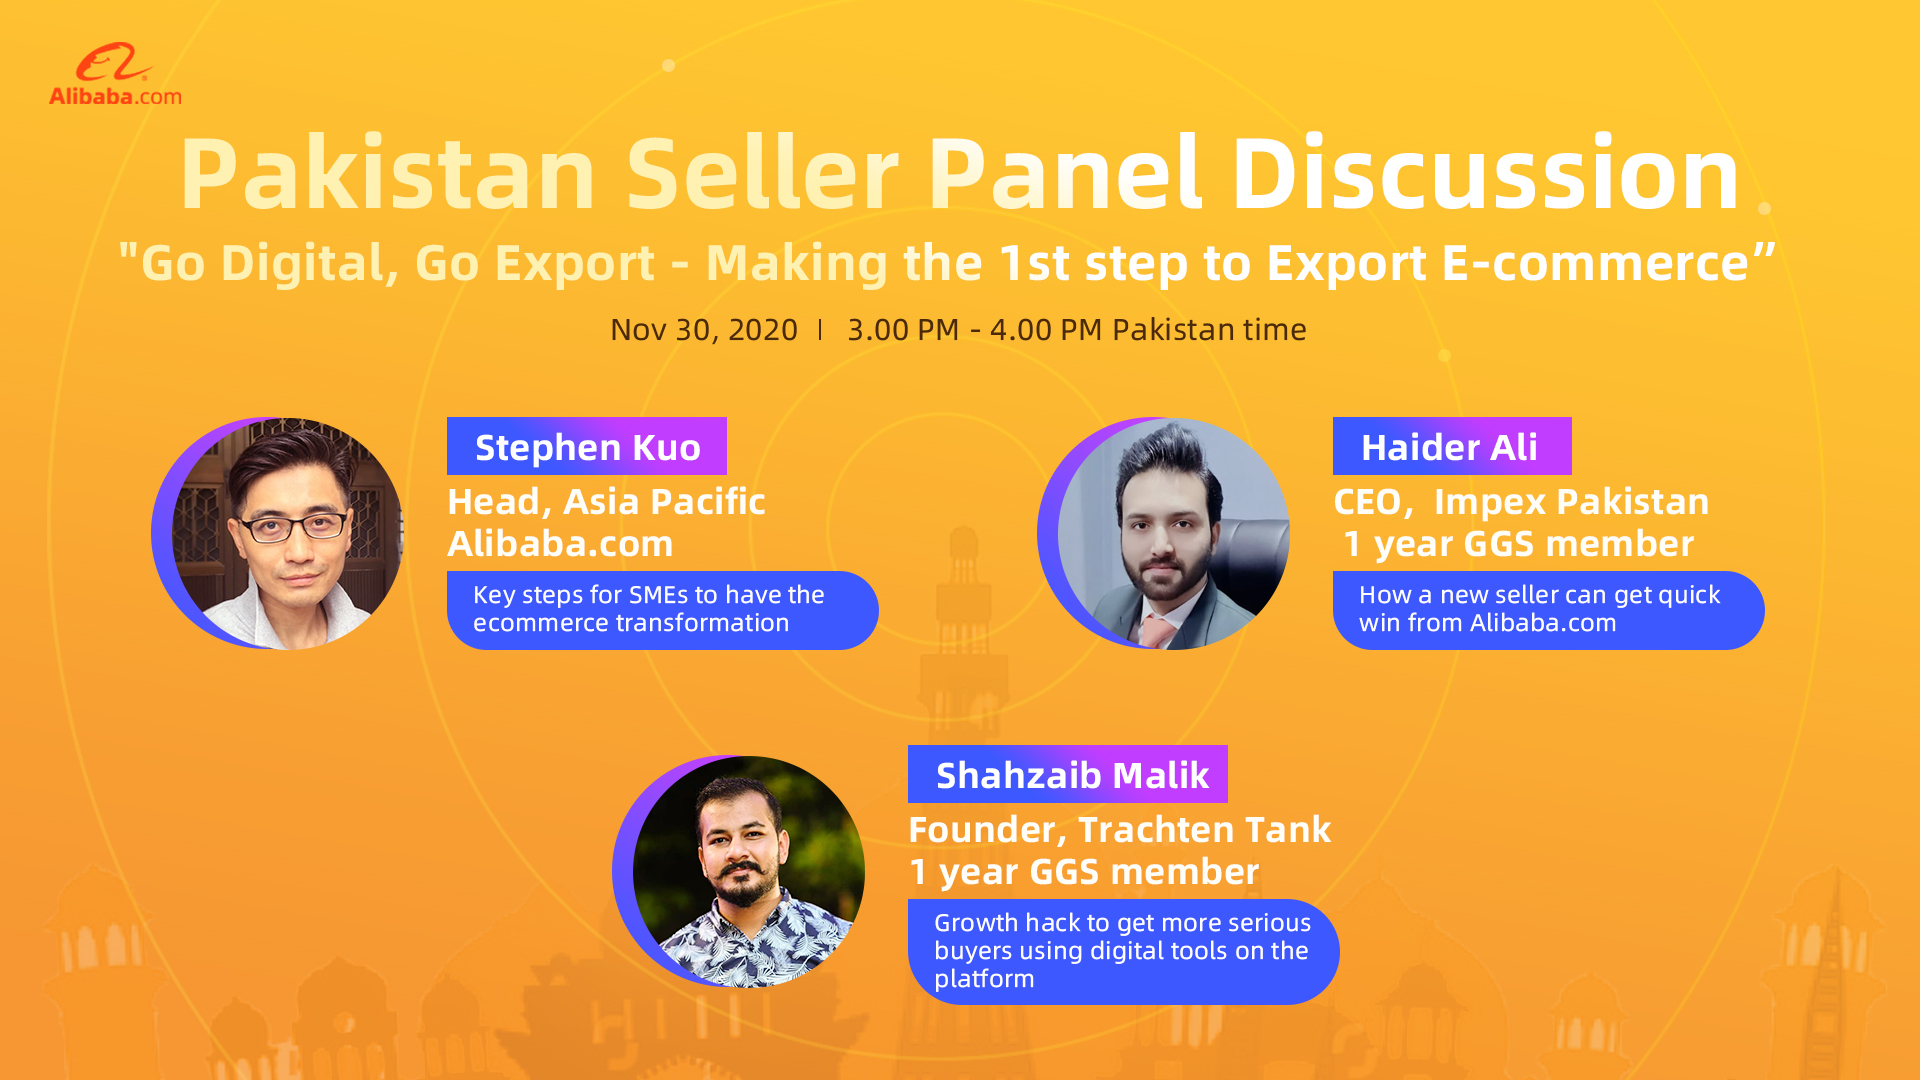 Pakistan Seller Panel Discussion: Making the first step to export ecommerce